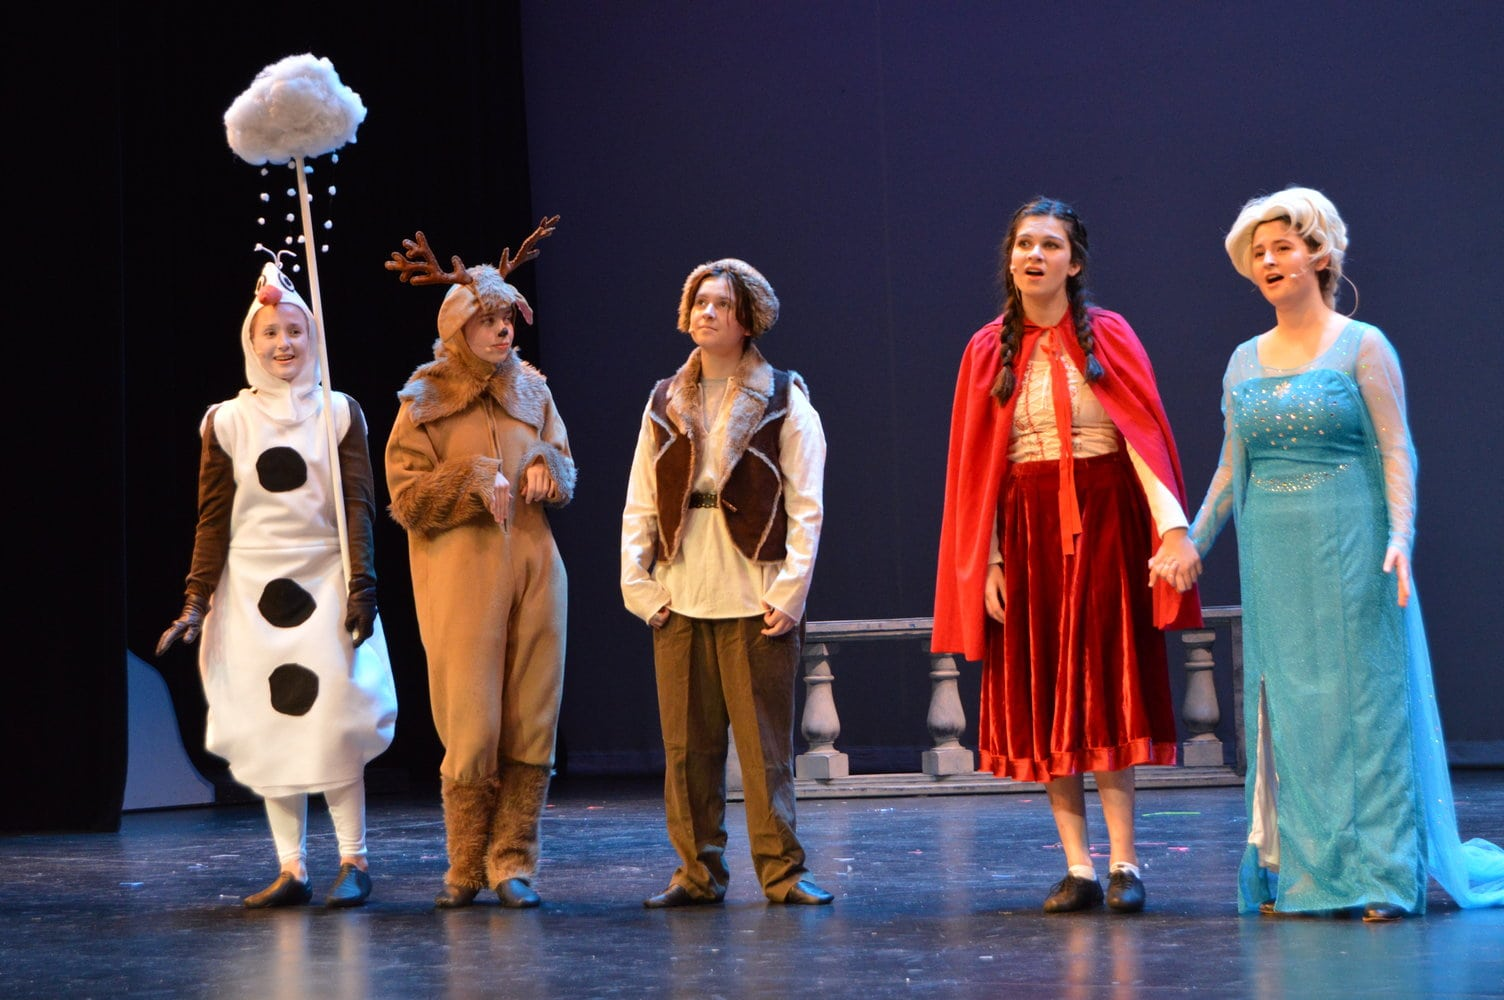 From left to right: Olaf (Jillian Michelson), Sven (Sydney Payne), Anna (Carly Ratcliffe), Elsa (Lucy Rocchio). Photo by Aileen Christian.